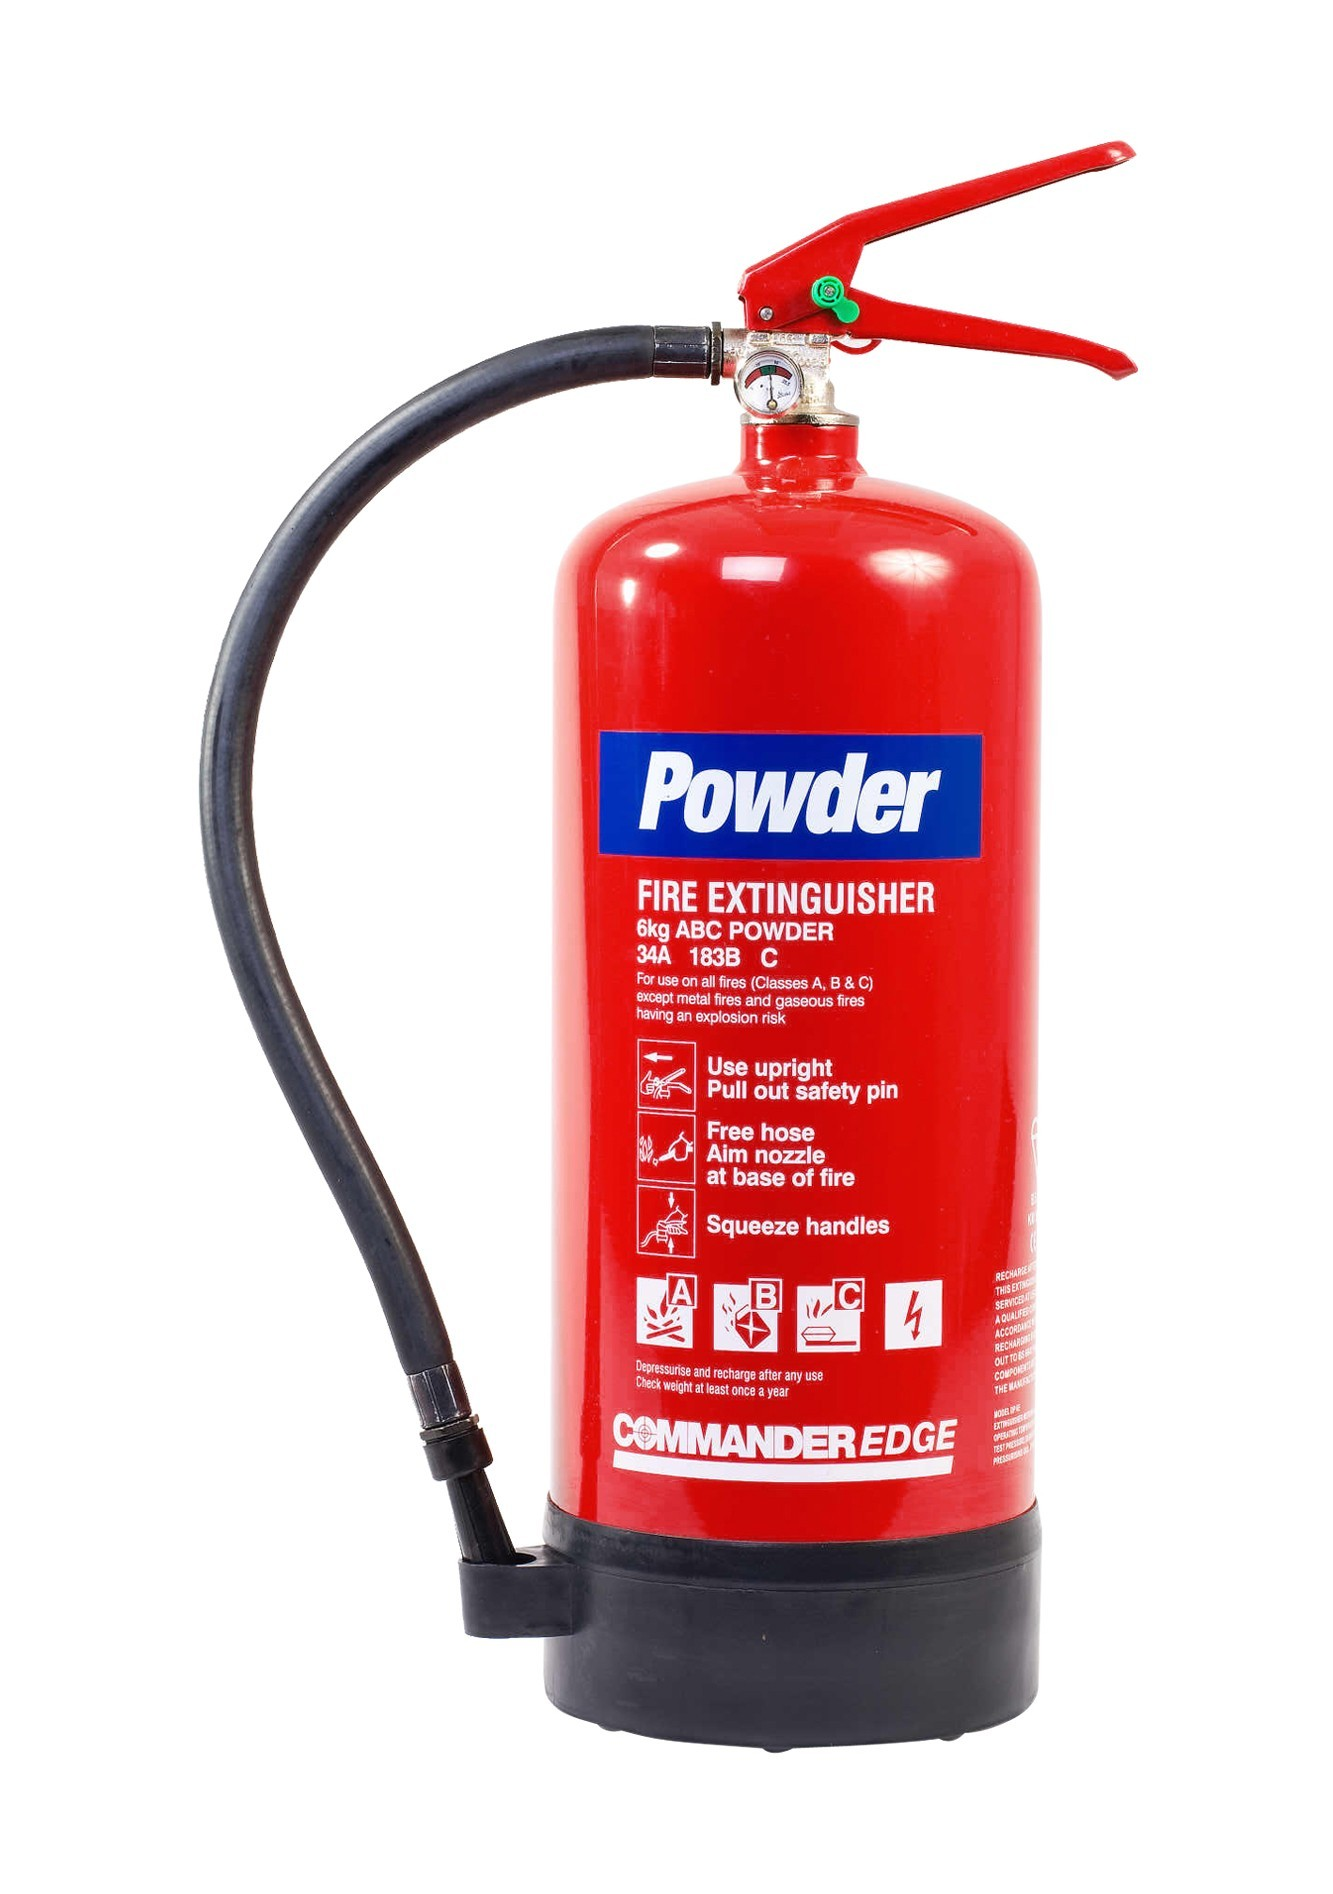 Fire Powder Can : Lake side chandlery kg powder fire extinguisher rated abc